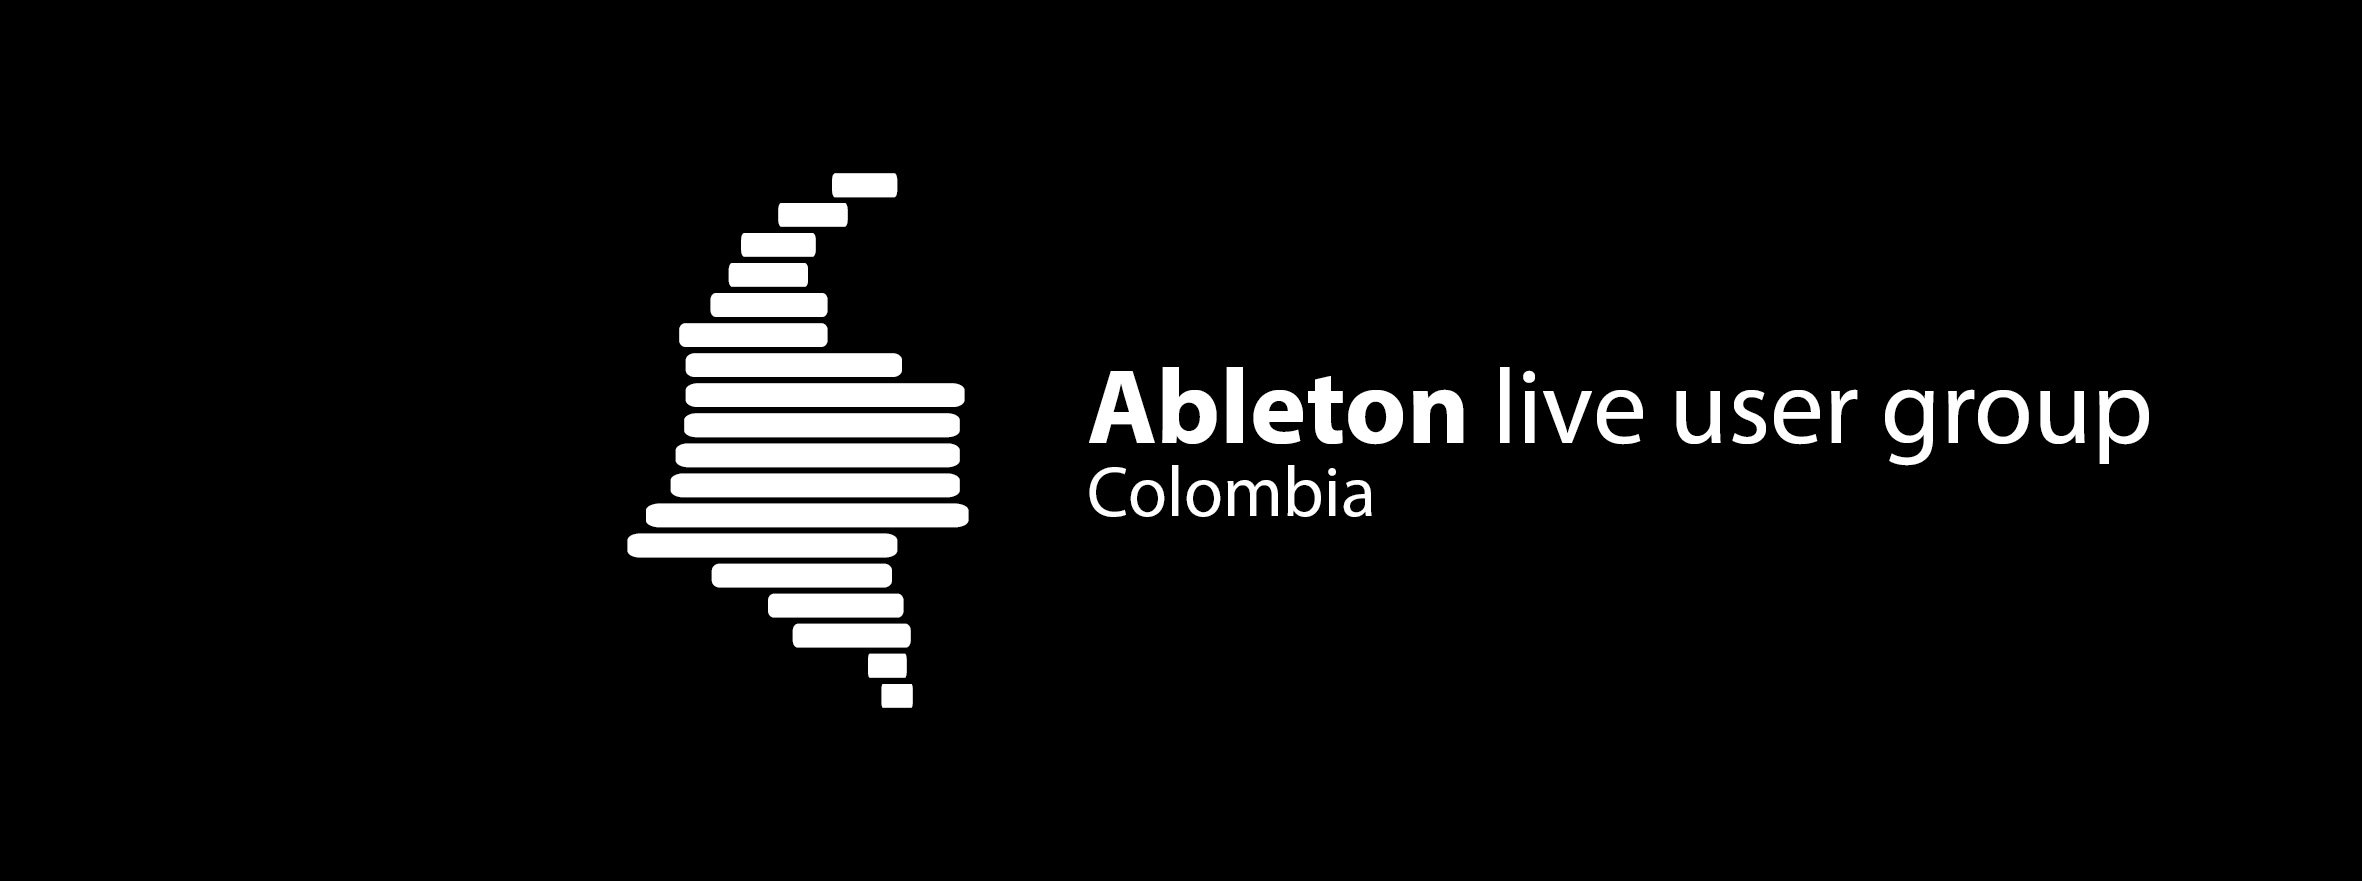 Colombia Ableton User Group.jpeg